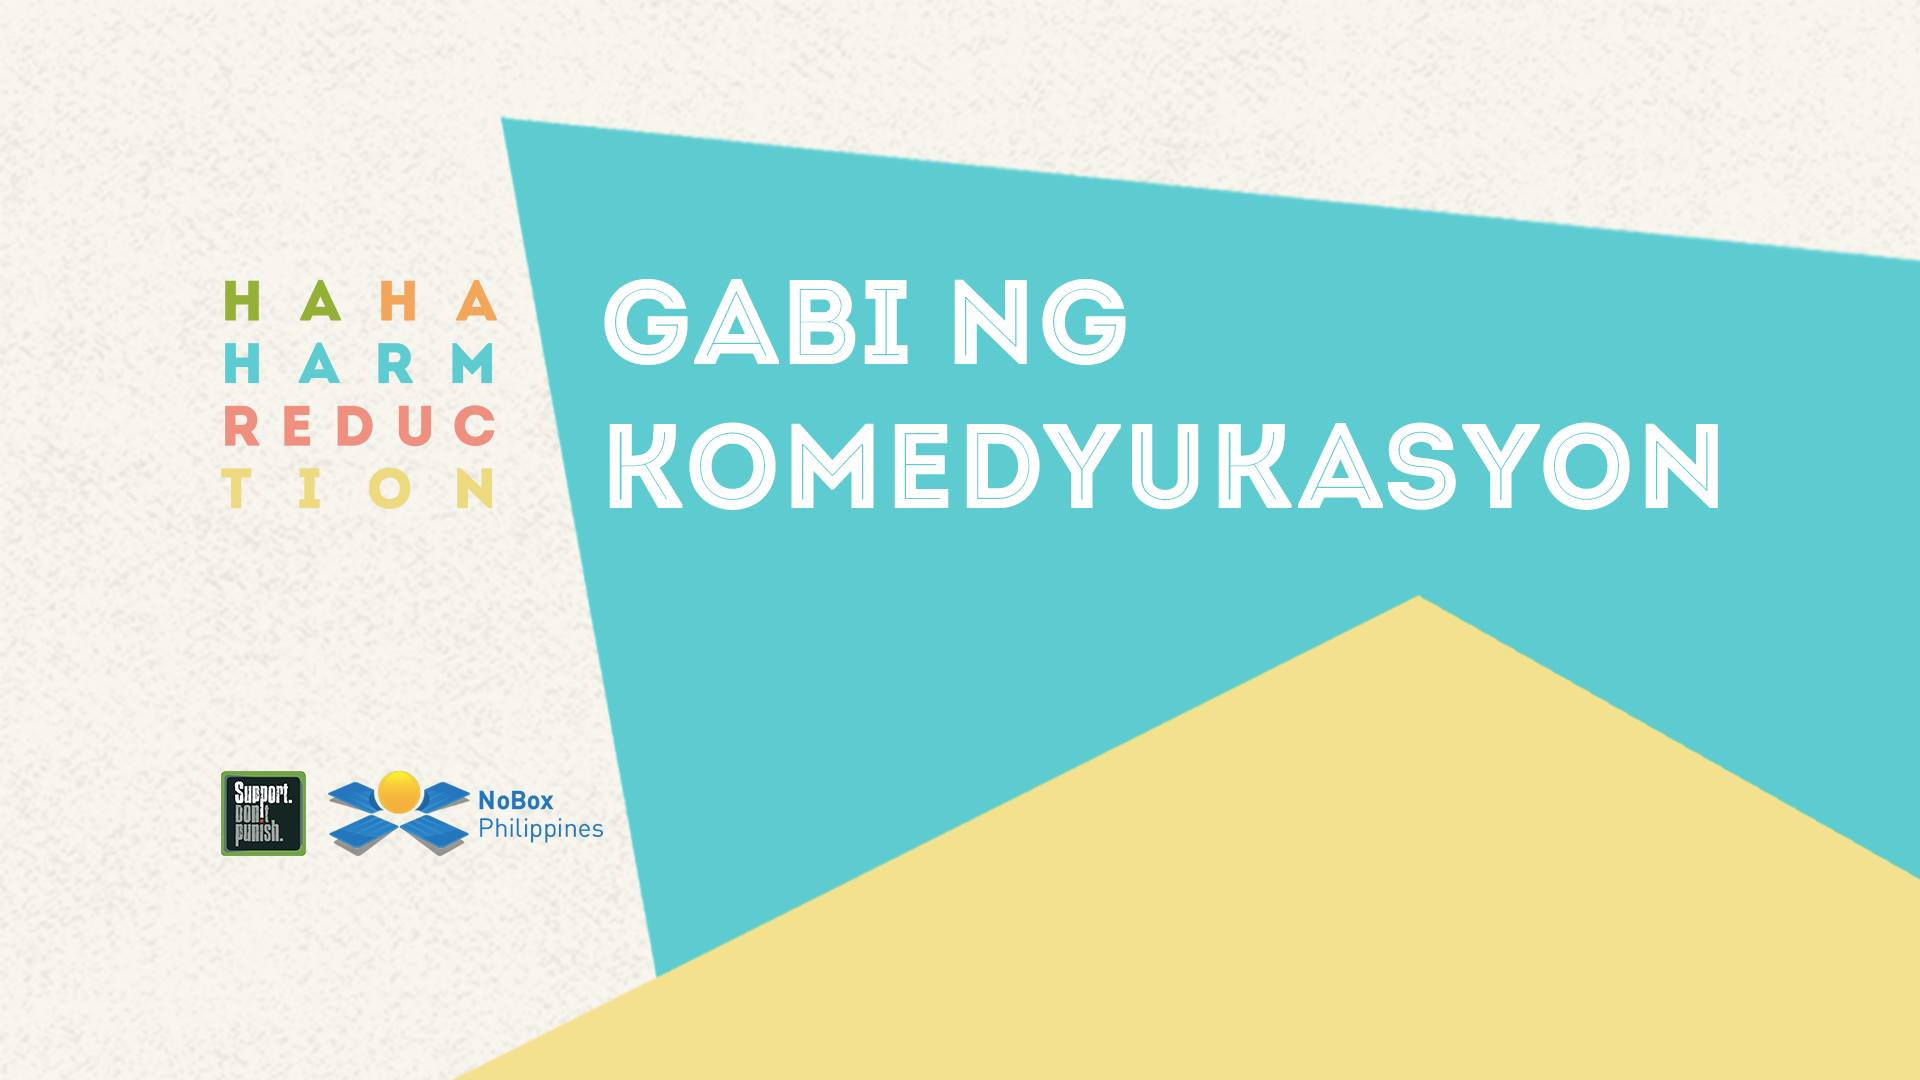 "HAHAHarm Reduction presents: Gabi ng Komedyukasyon Public · Hosted by NoBox Transitions Foundation, Inc. clock Saturday at 7 PM - 10 PM 4 days from now · 25–32° Heavy Thunderstorm pin Show Map Backyard Kitchen+Brew UP Town Center, Katipunan Avenue, Diliman, 1105 Quezon City, Philippines Combining real science and really funny people, we invited some of the best academicians and stand-up comedians in the country to discuss our drug situation in a way you've never seen before. ""Gabi ng Komedyukasyon"" is NoBox Philippines' participation in the global Support. Don't Punish. campaign calling for better drug policies that prioritize public health and human rights. Tickets at PhP250 and available beginning next week! ---- NoBox Transitions Foundation, Inc.‎HAHAHarm Reduction presents: Gabi ng Komedyukasyon Like This Page · June 22 ·"